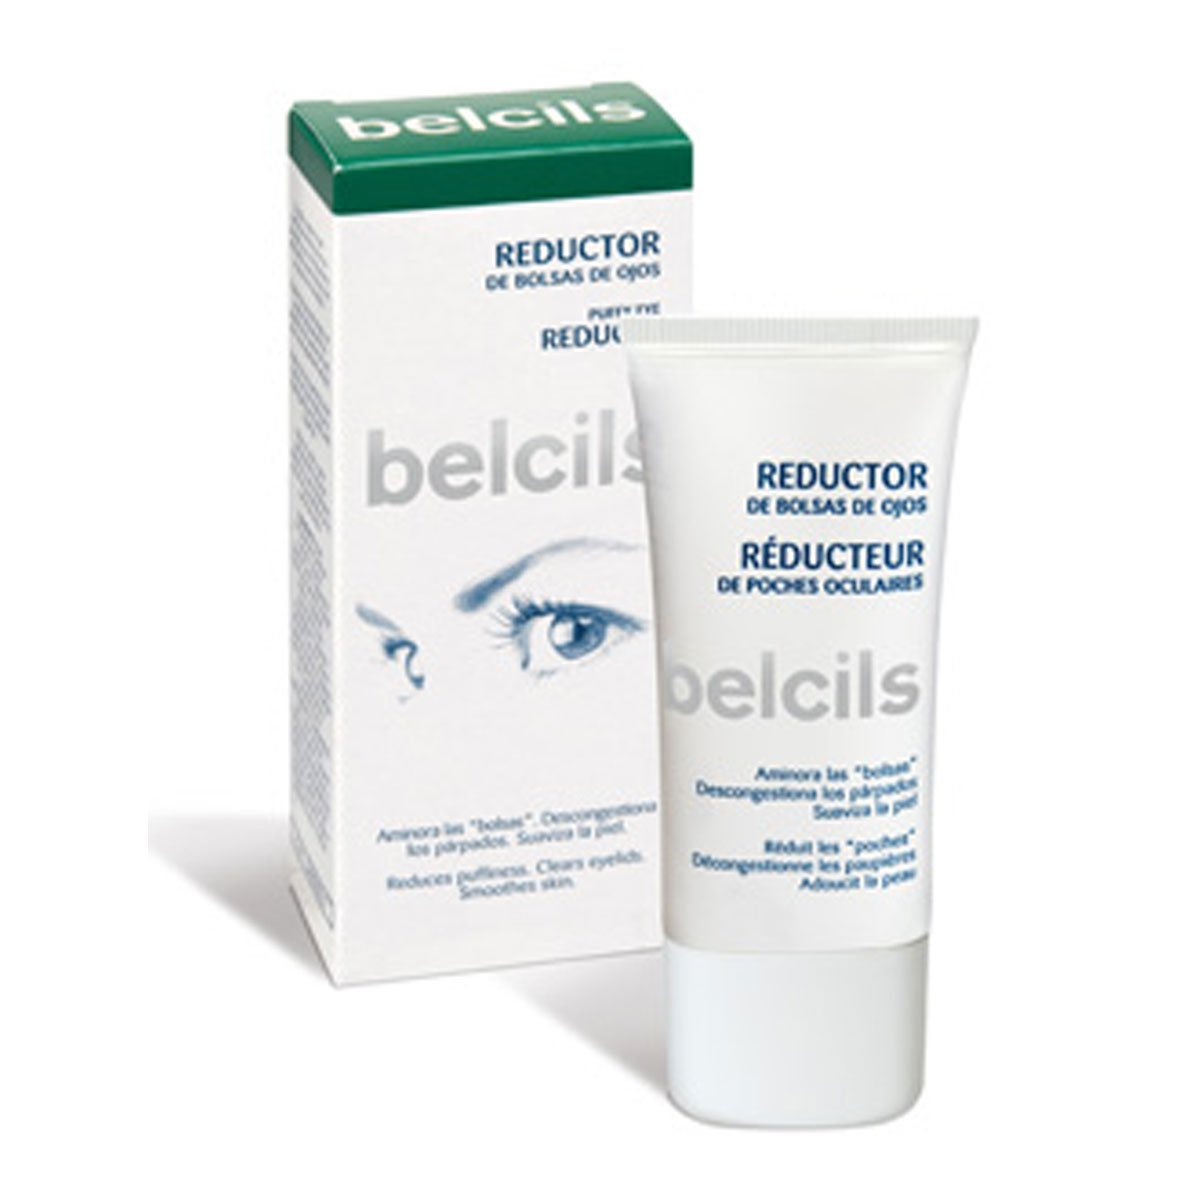 Amazon.com: belcils Reductor de bolsas y ojeras Crema 30 ml ...